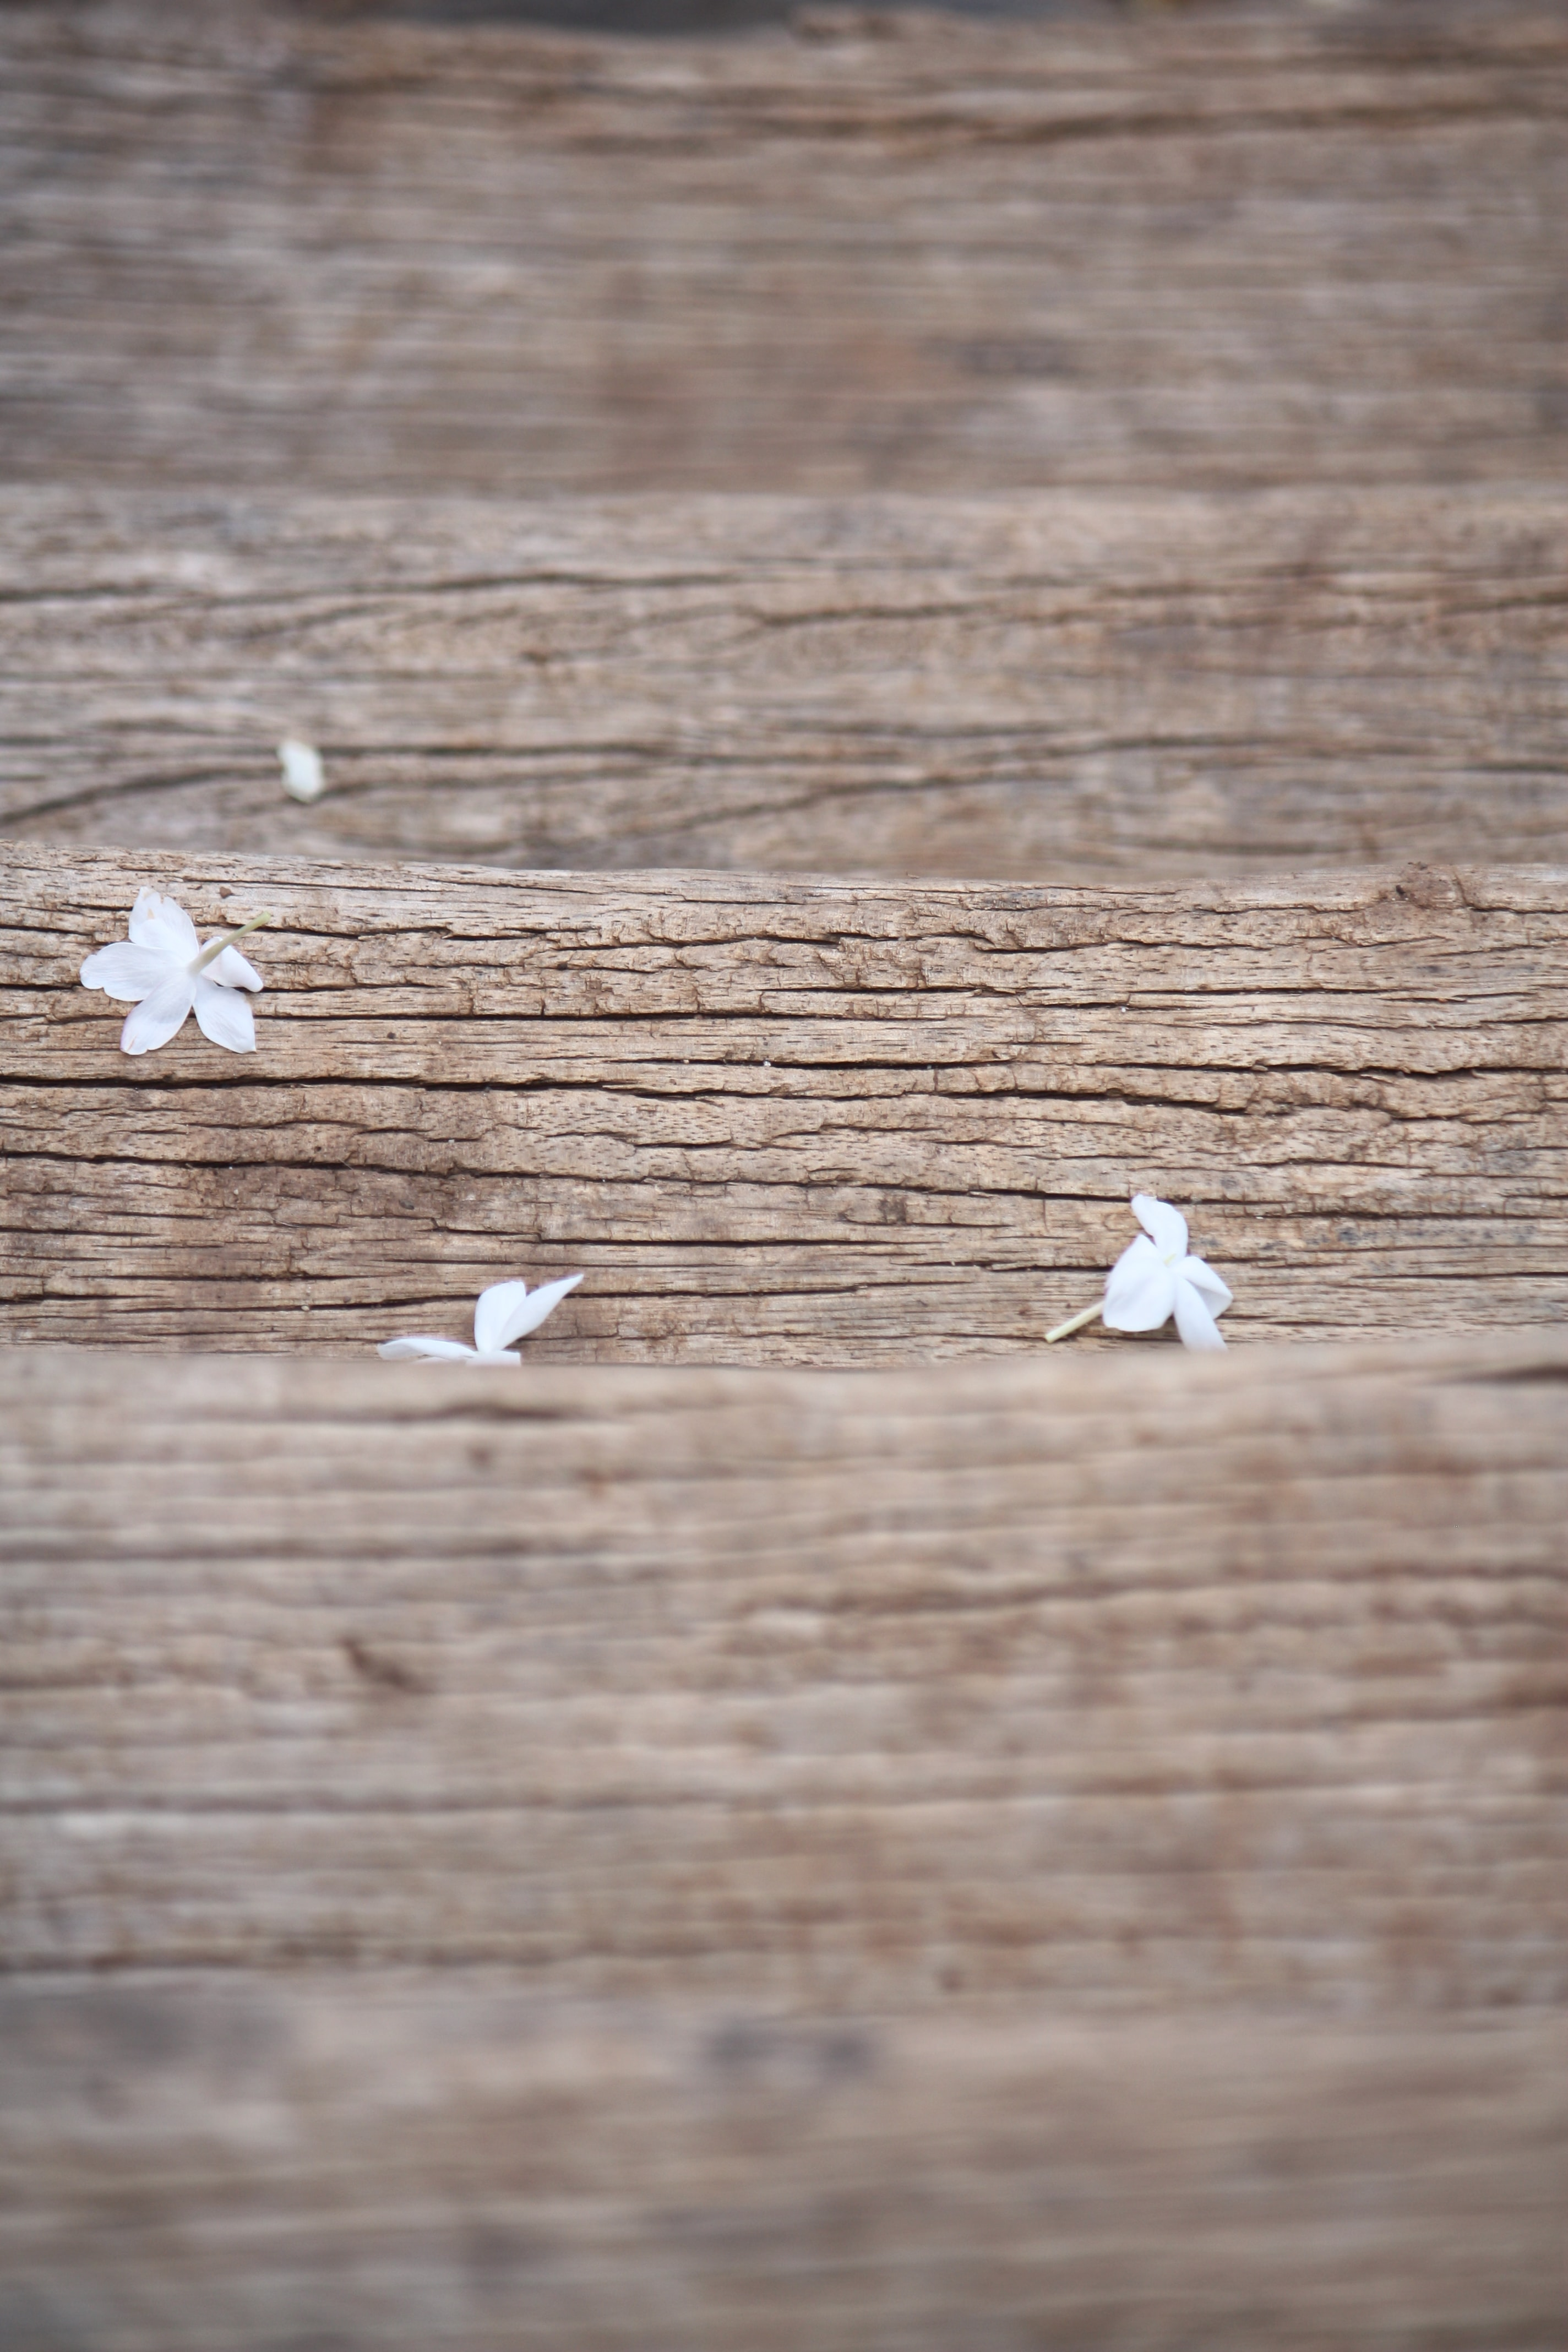 Small fallen flowers on a wooden step in Σχίσμα Ελούντας